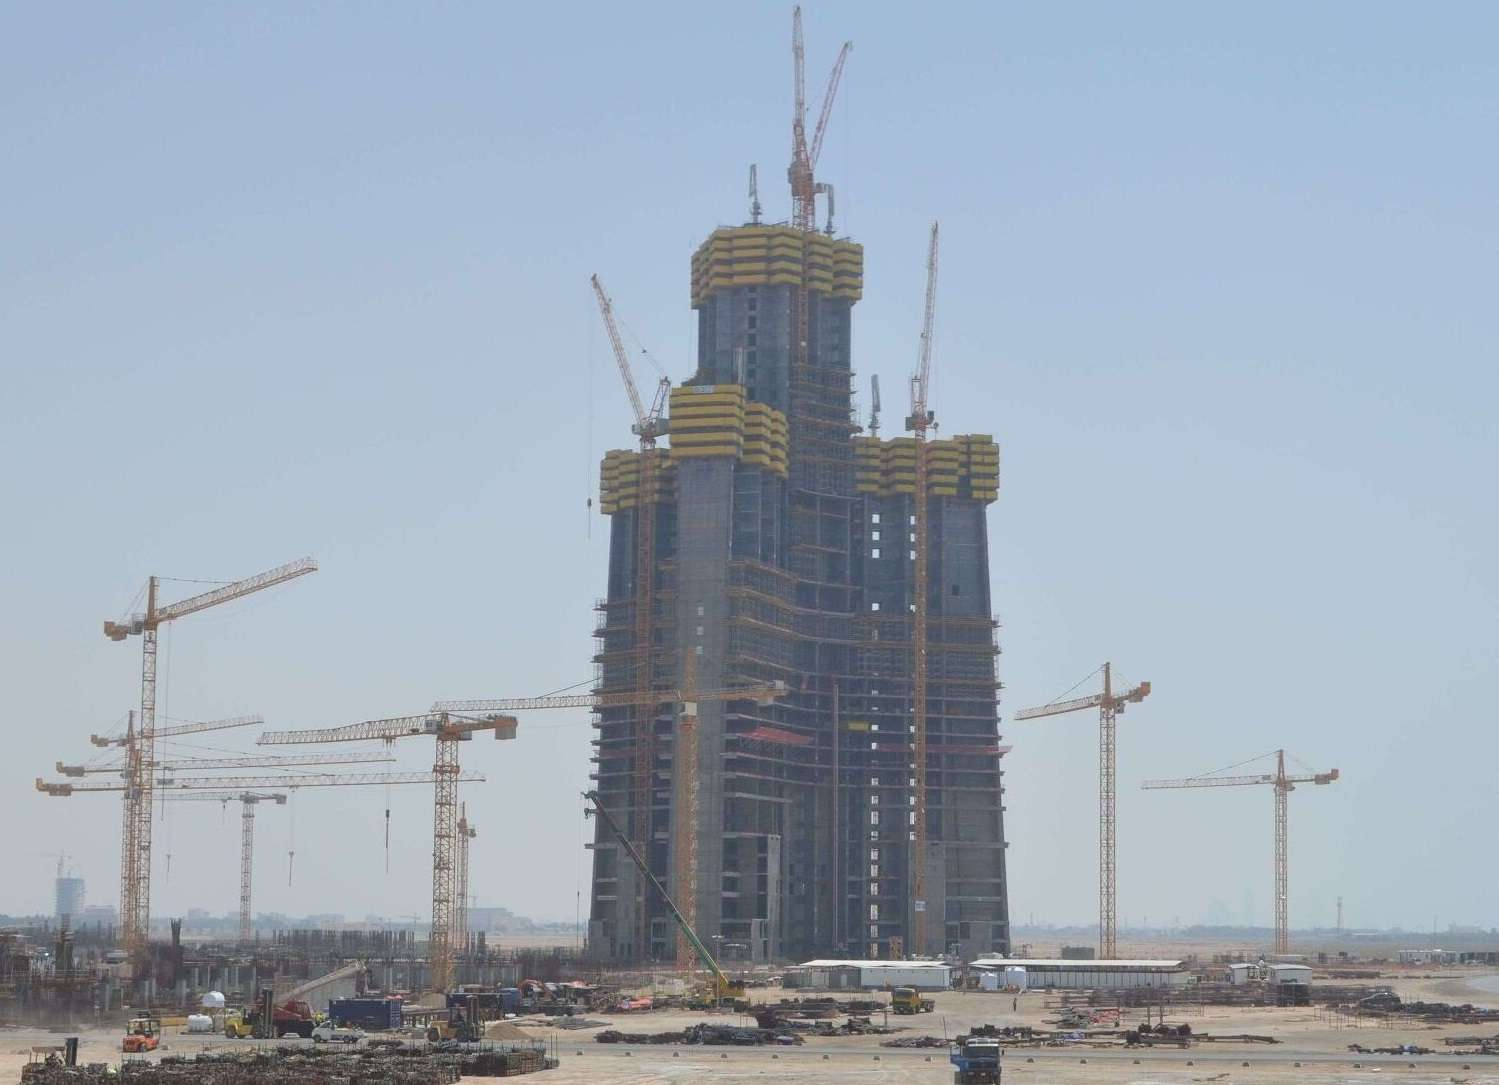 The Jeddah Tower is set to be the world's tallest structure by 2020. Eric893/Wikimedia Commons